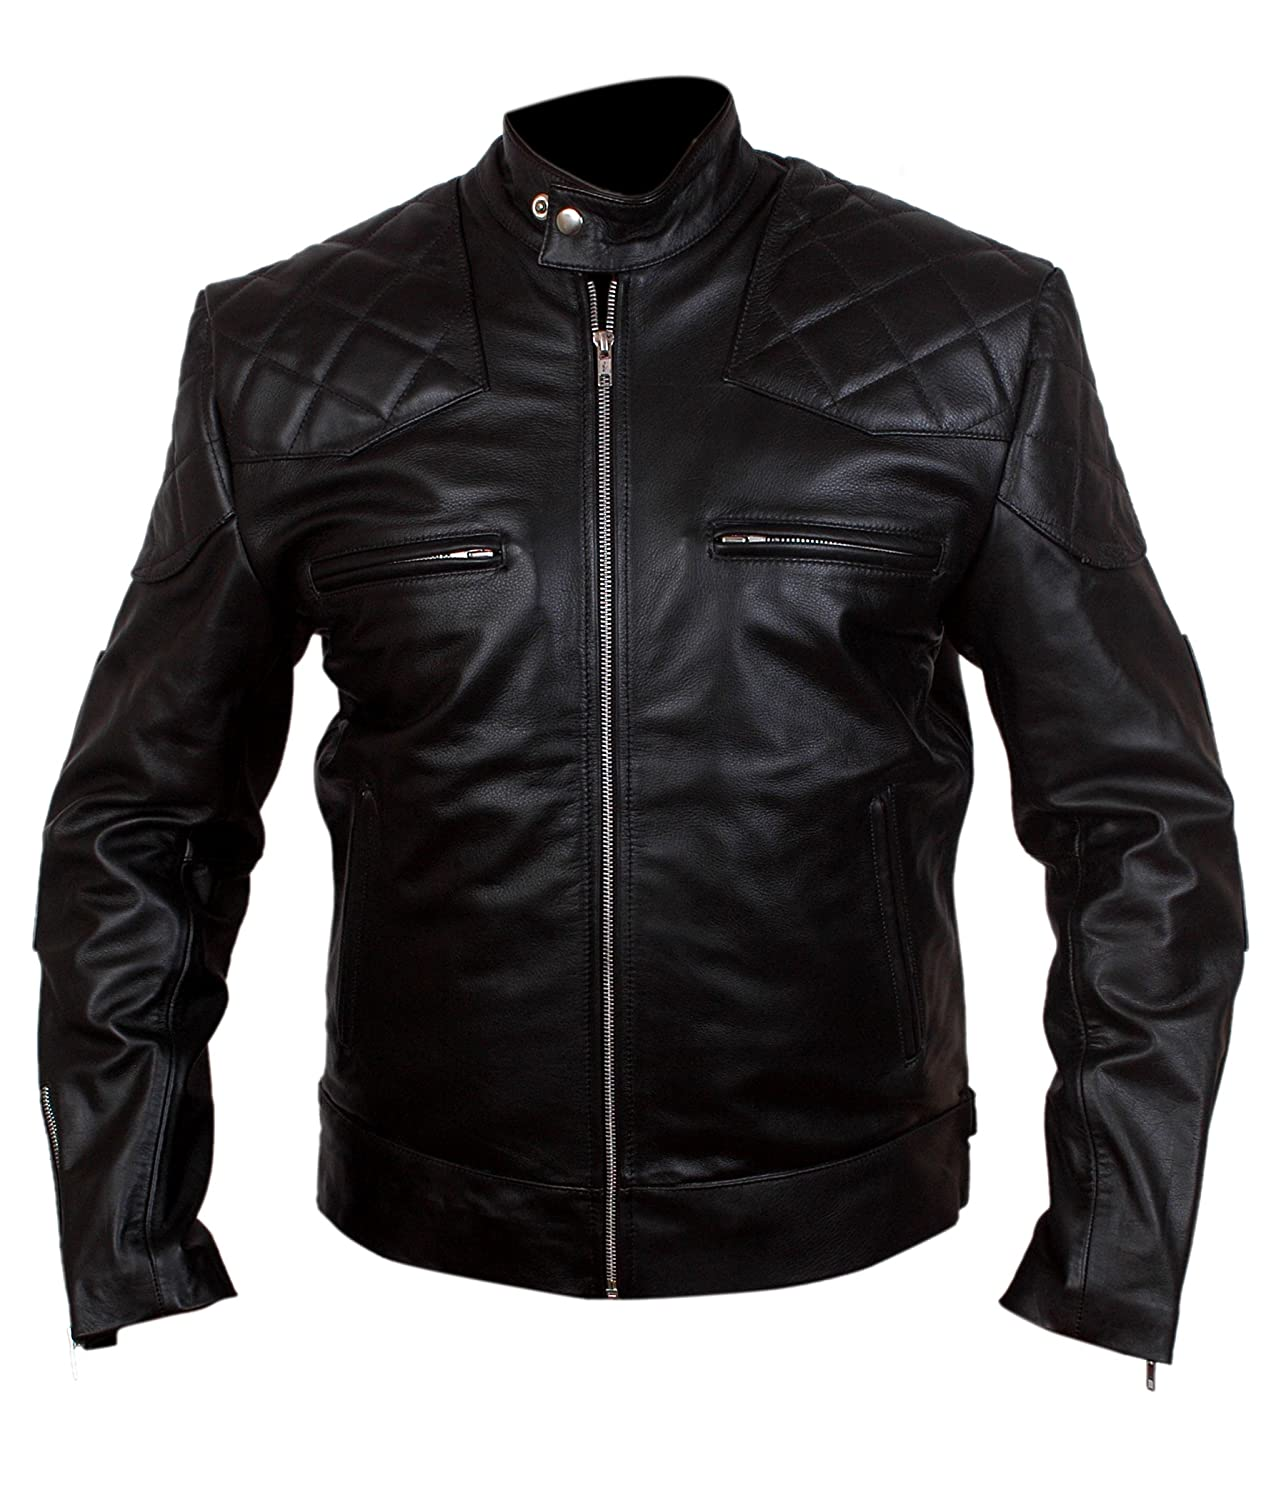 David Beckham Real Leather Black Jacket d-beck-p